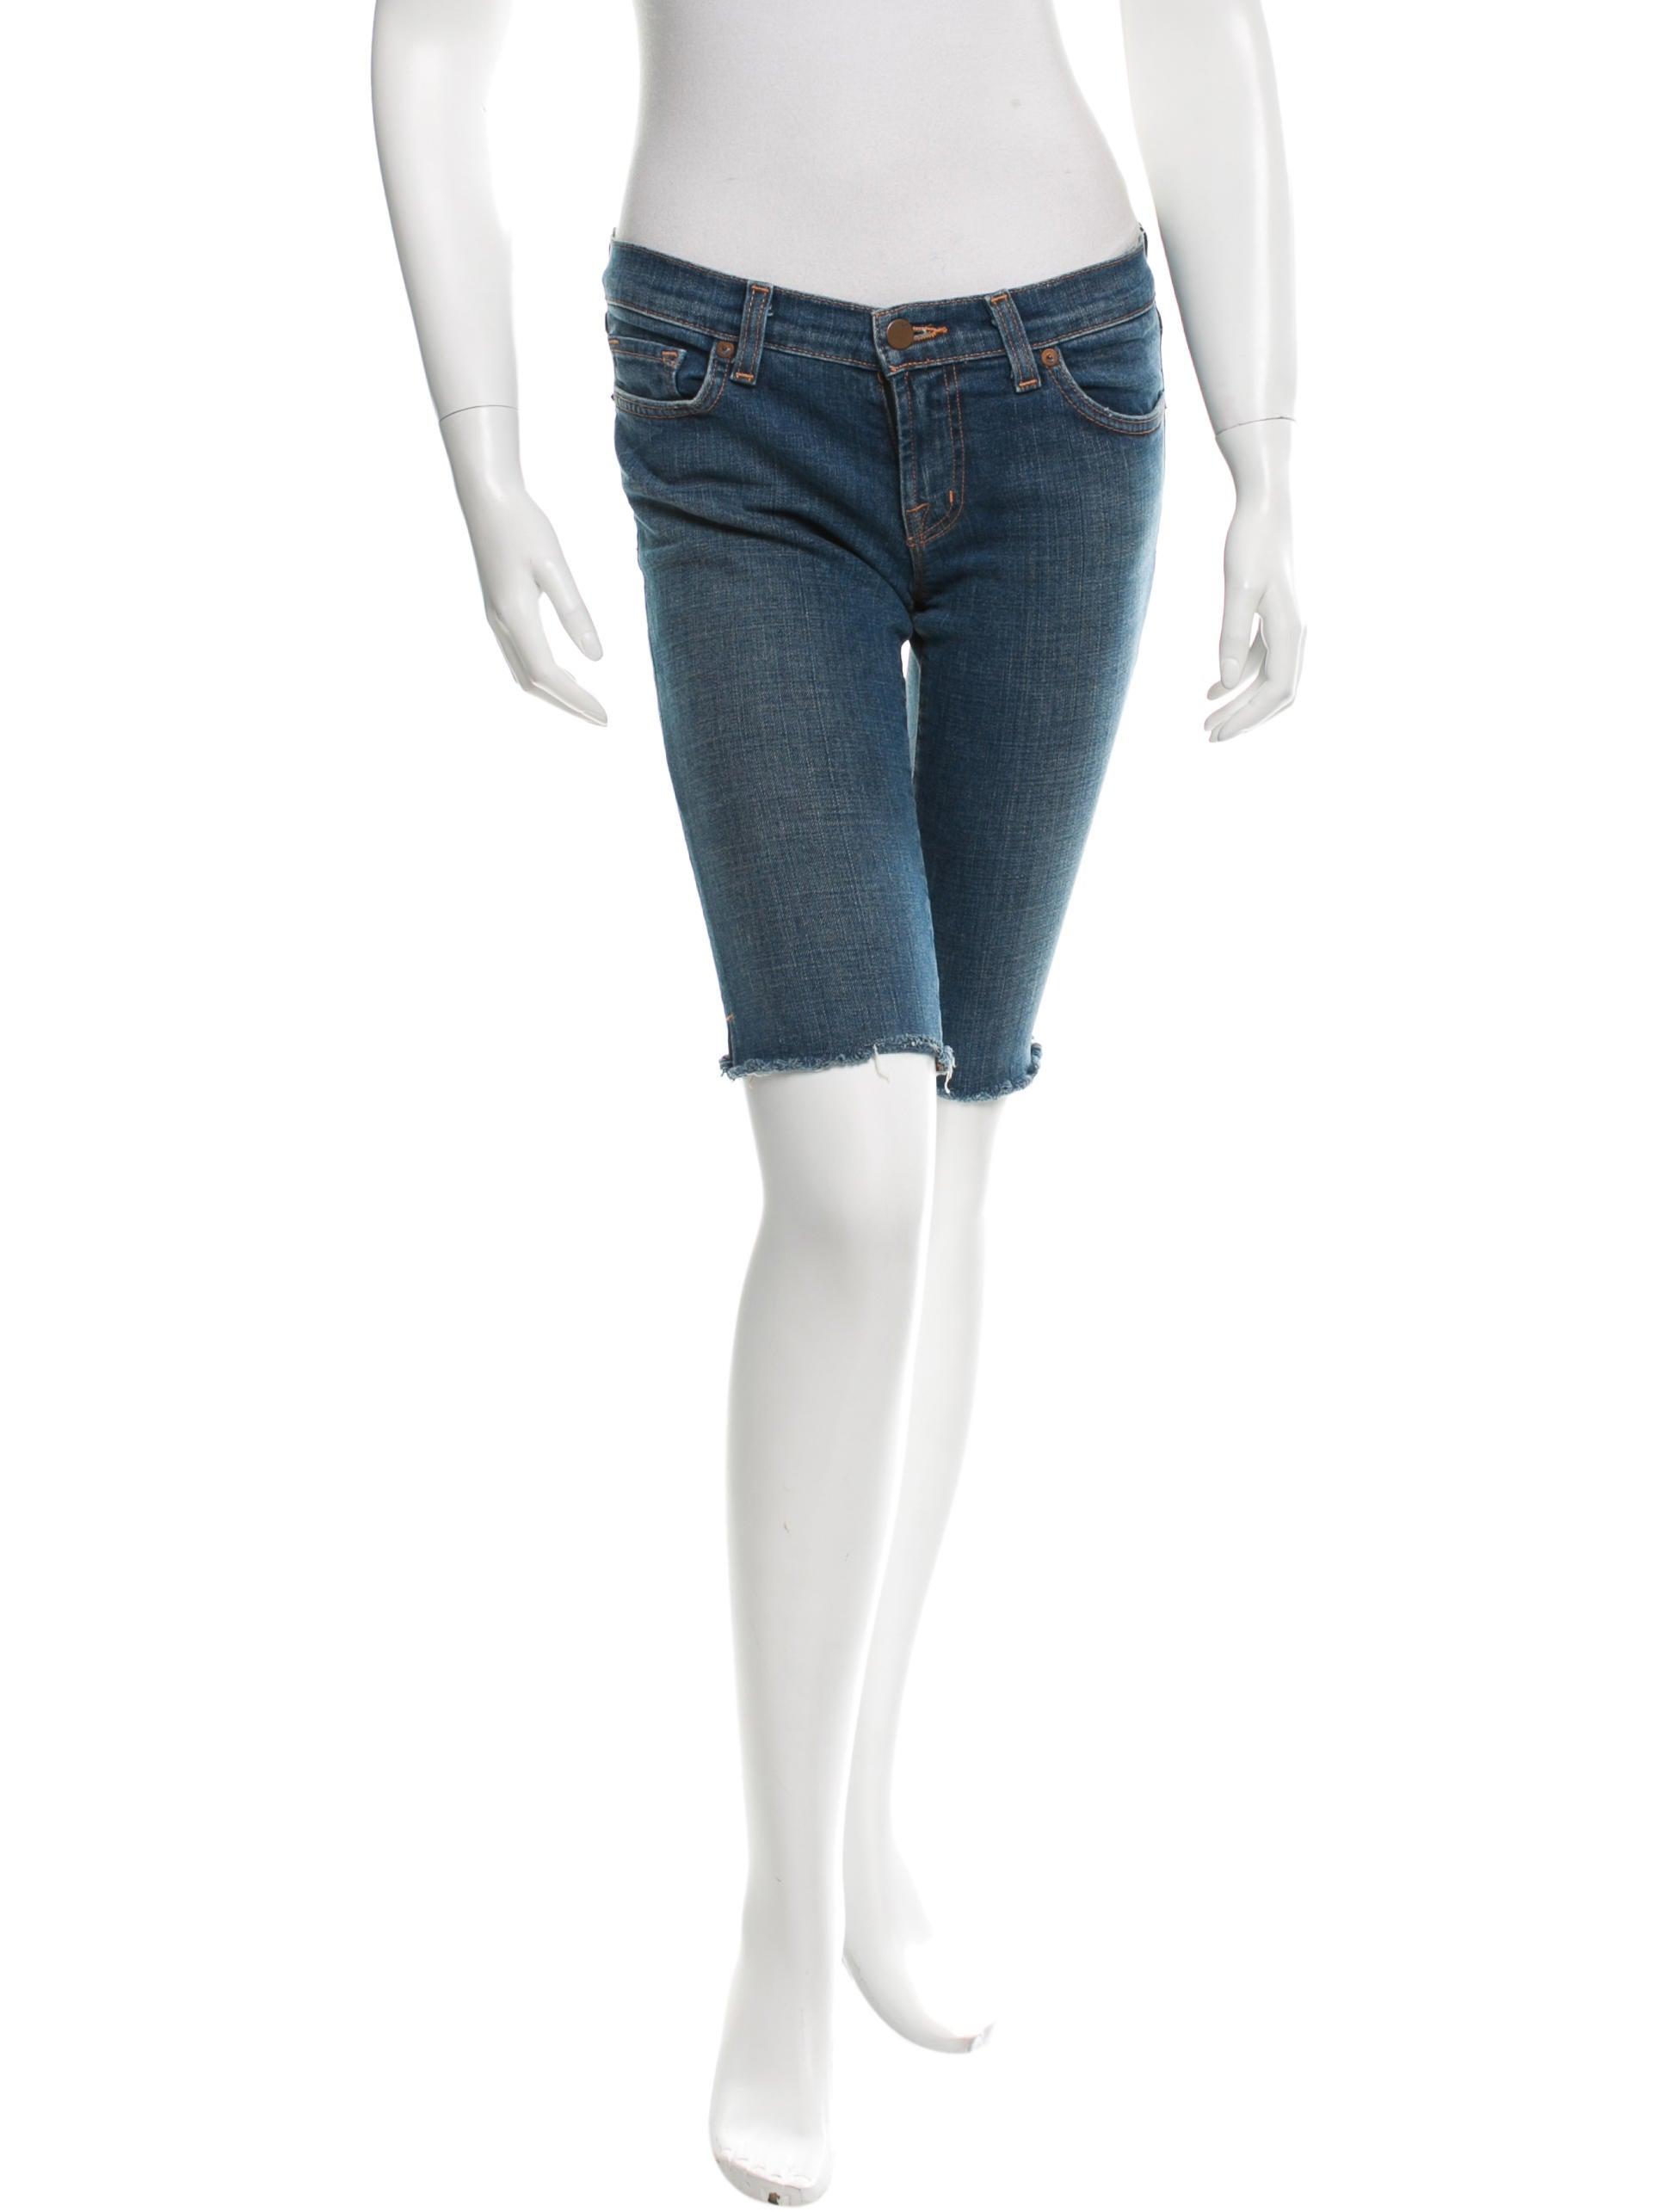 J Brand Knee-Length Denim Shorts - Clothing